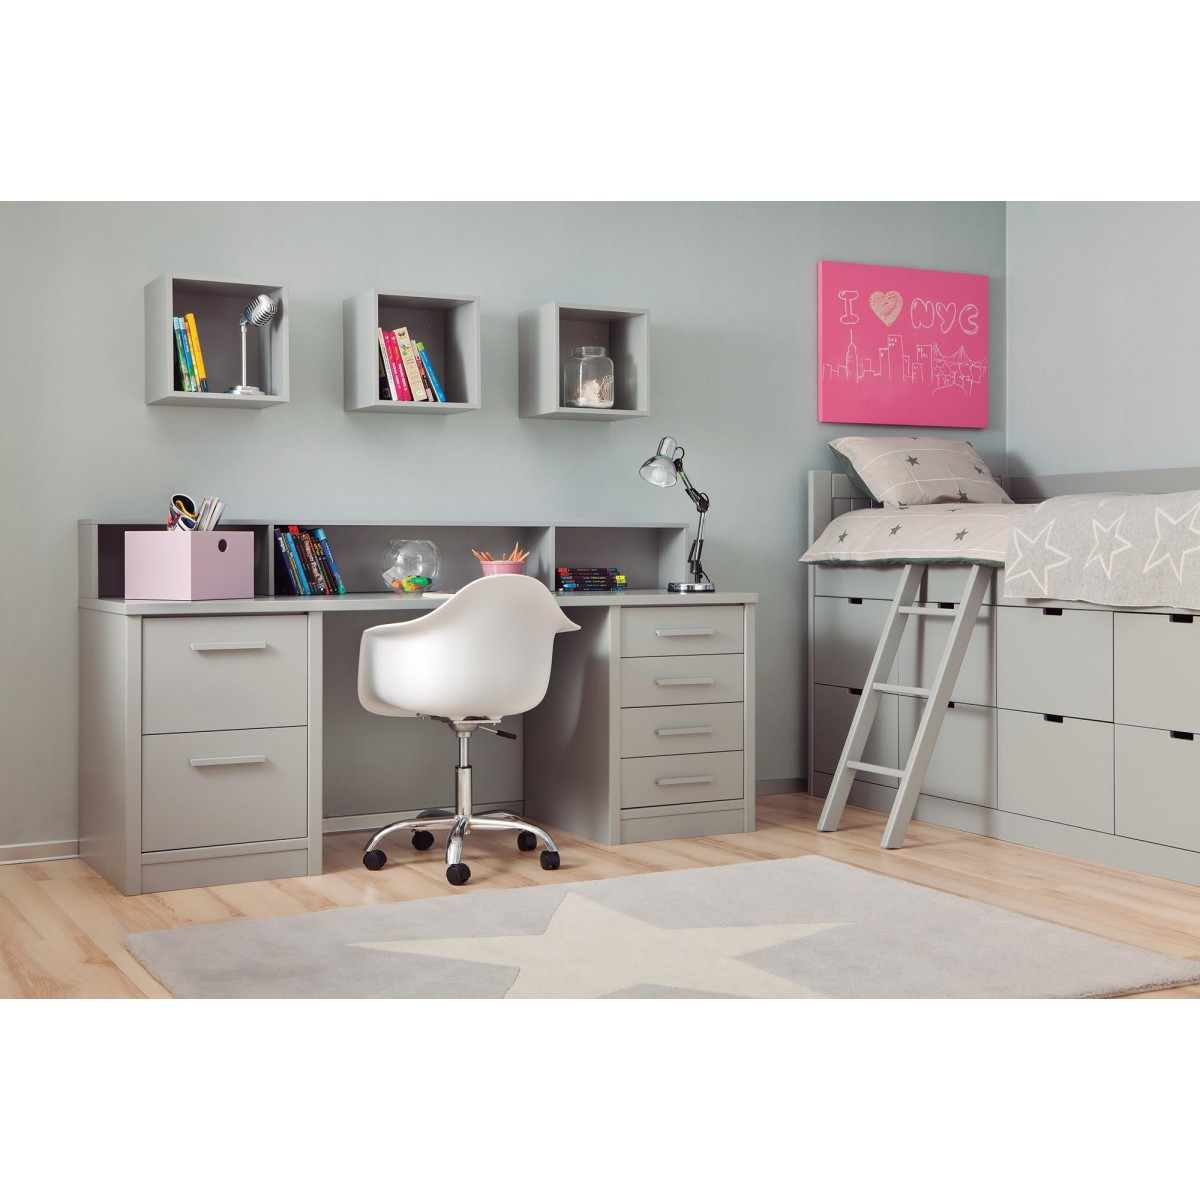 chambre enfant de qualit asoral vendues chez ksl living. Black Bedroom Furniture Sets. Home Design Ideas